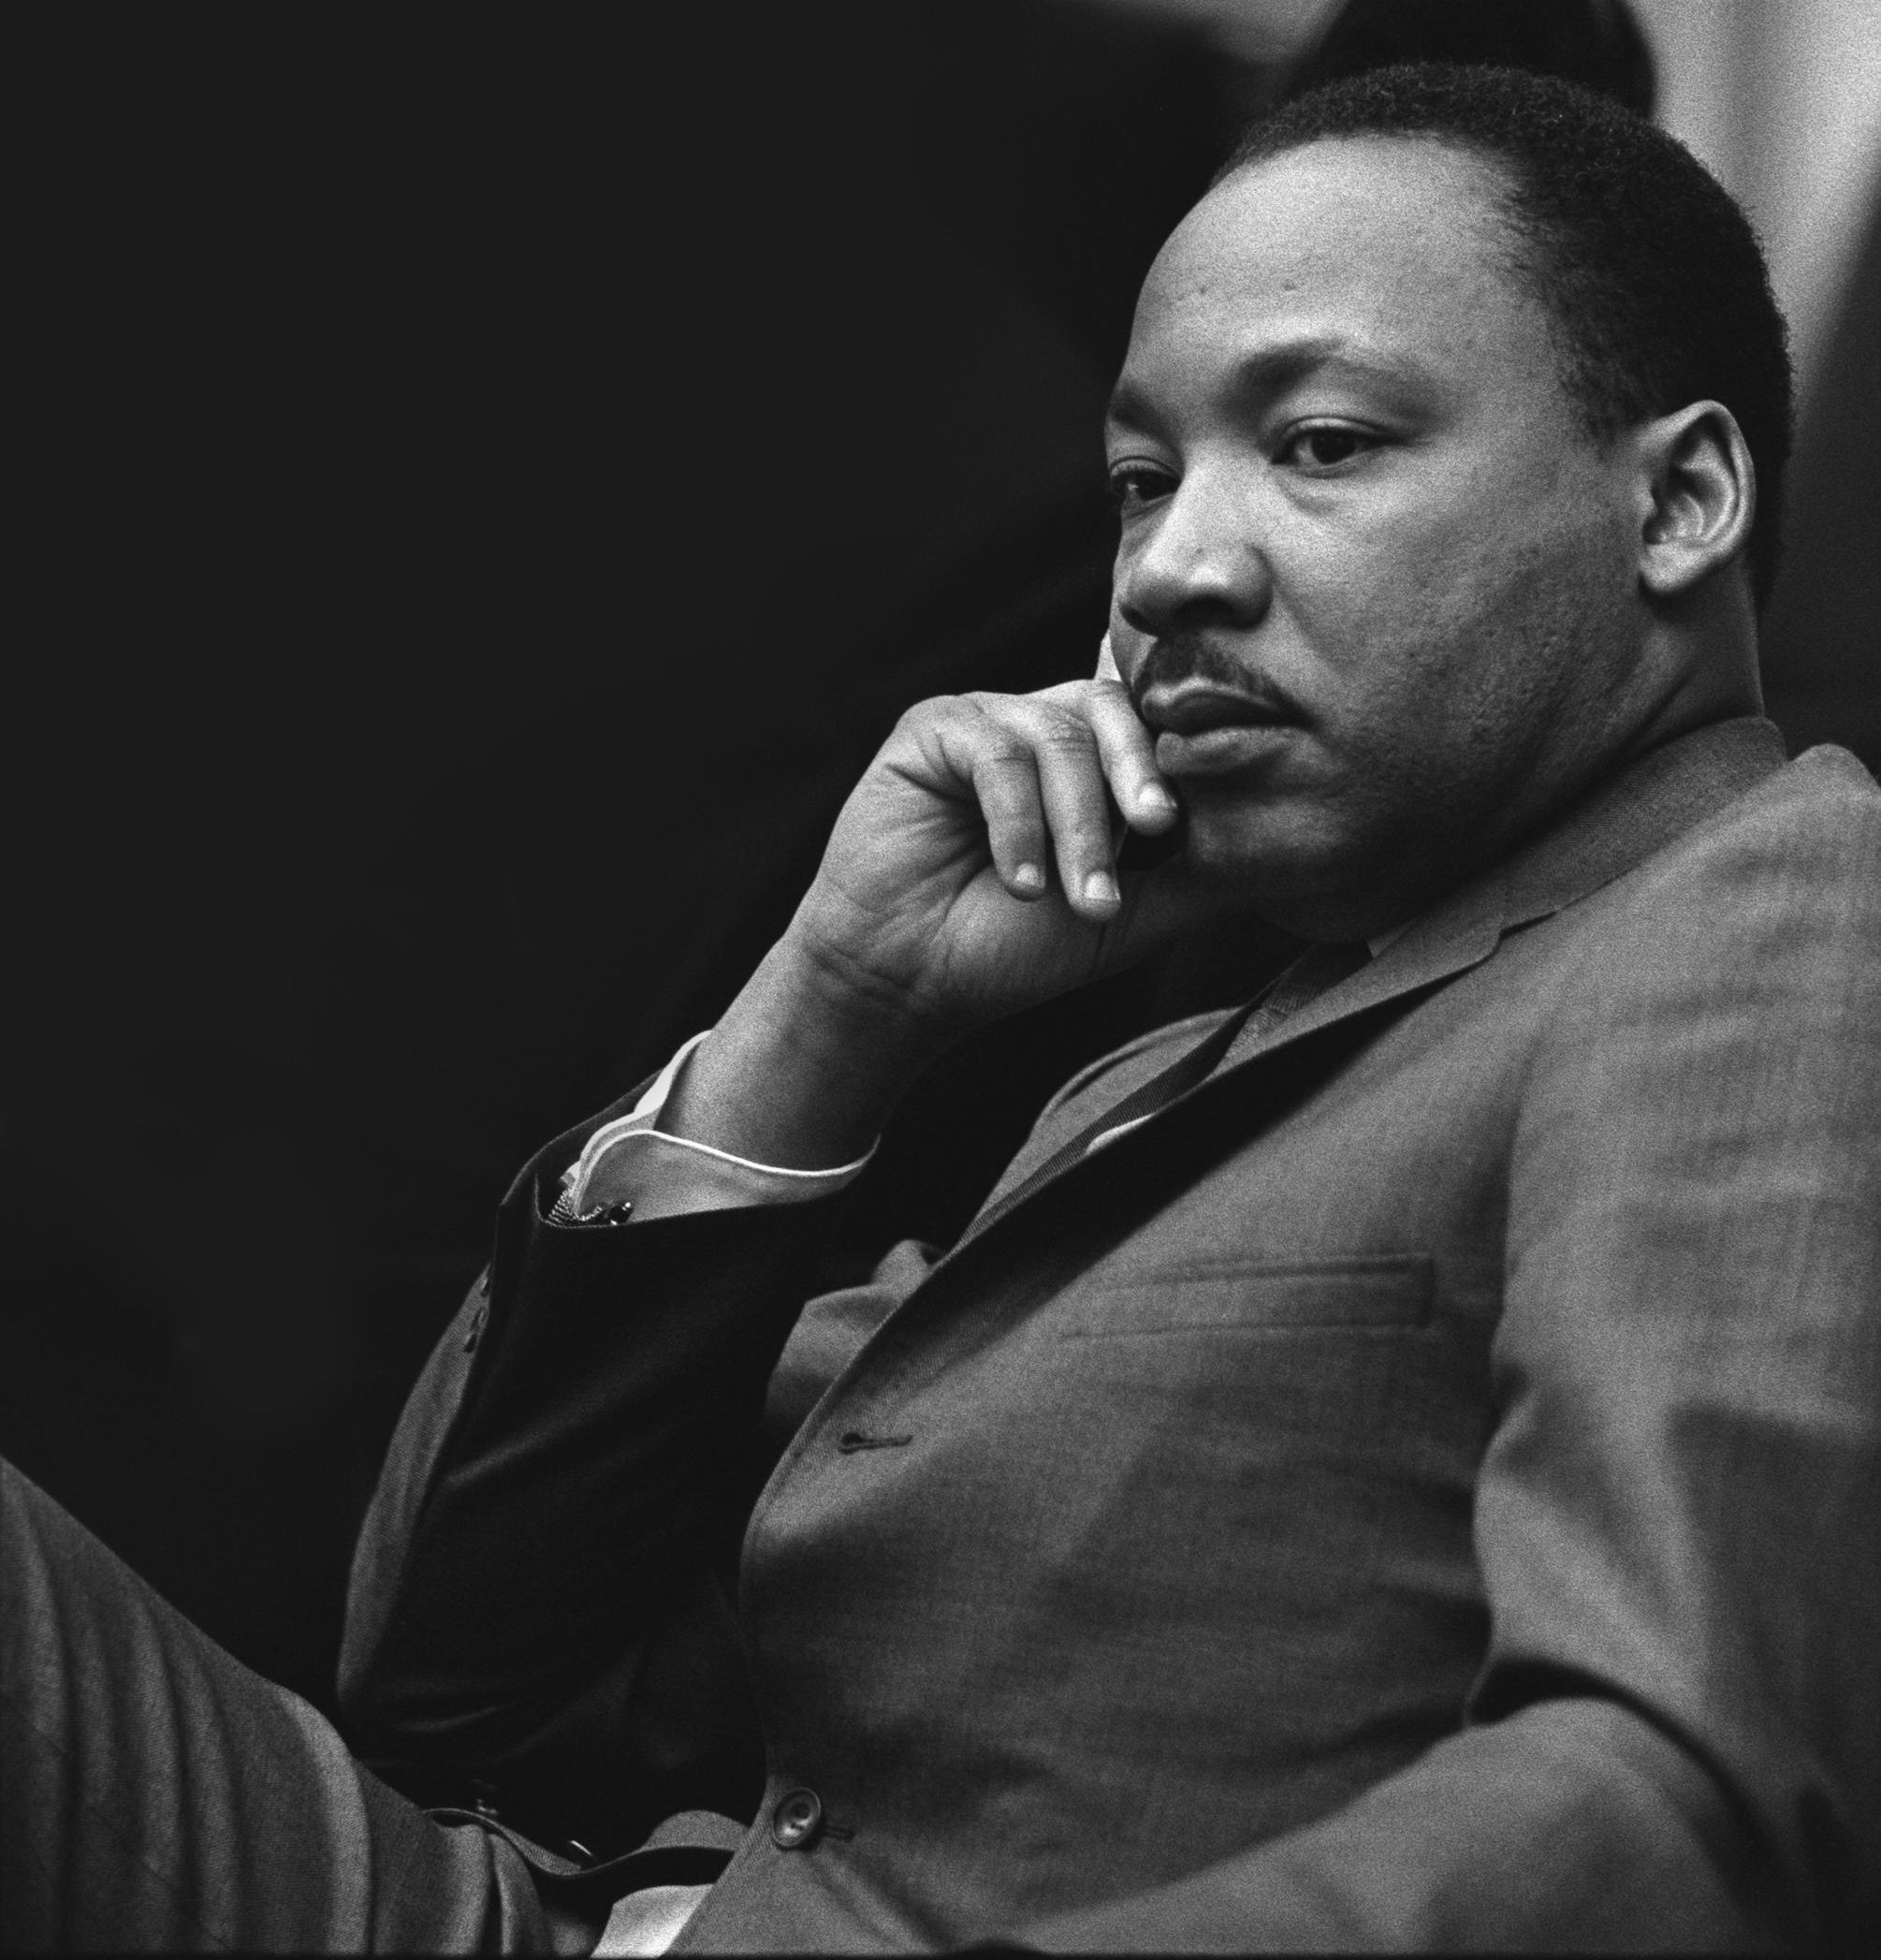 Martin Luther King Jr 1929-1968 BW Poster Dr